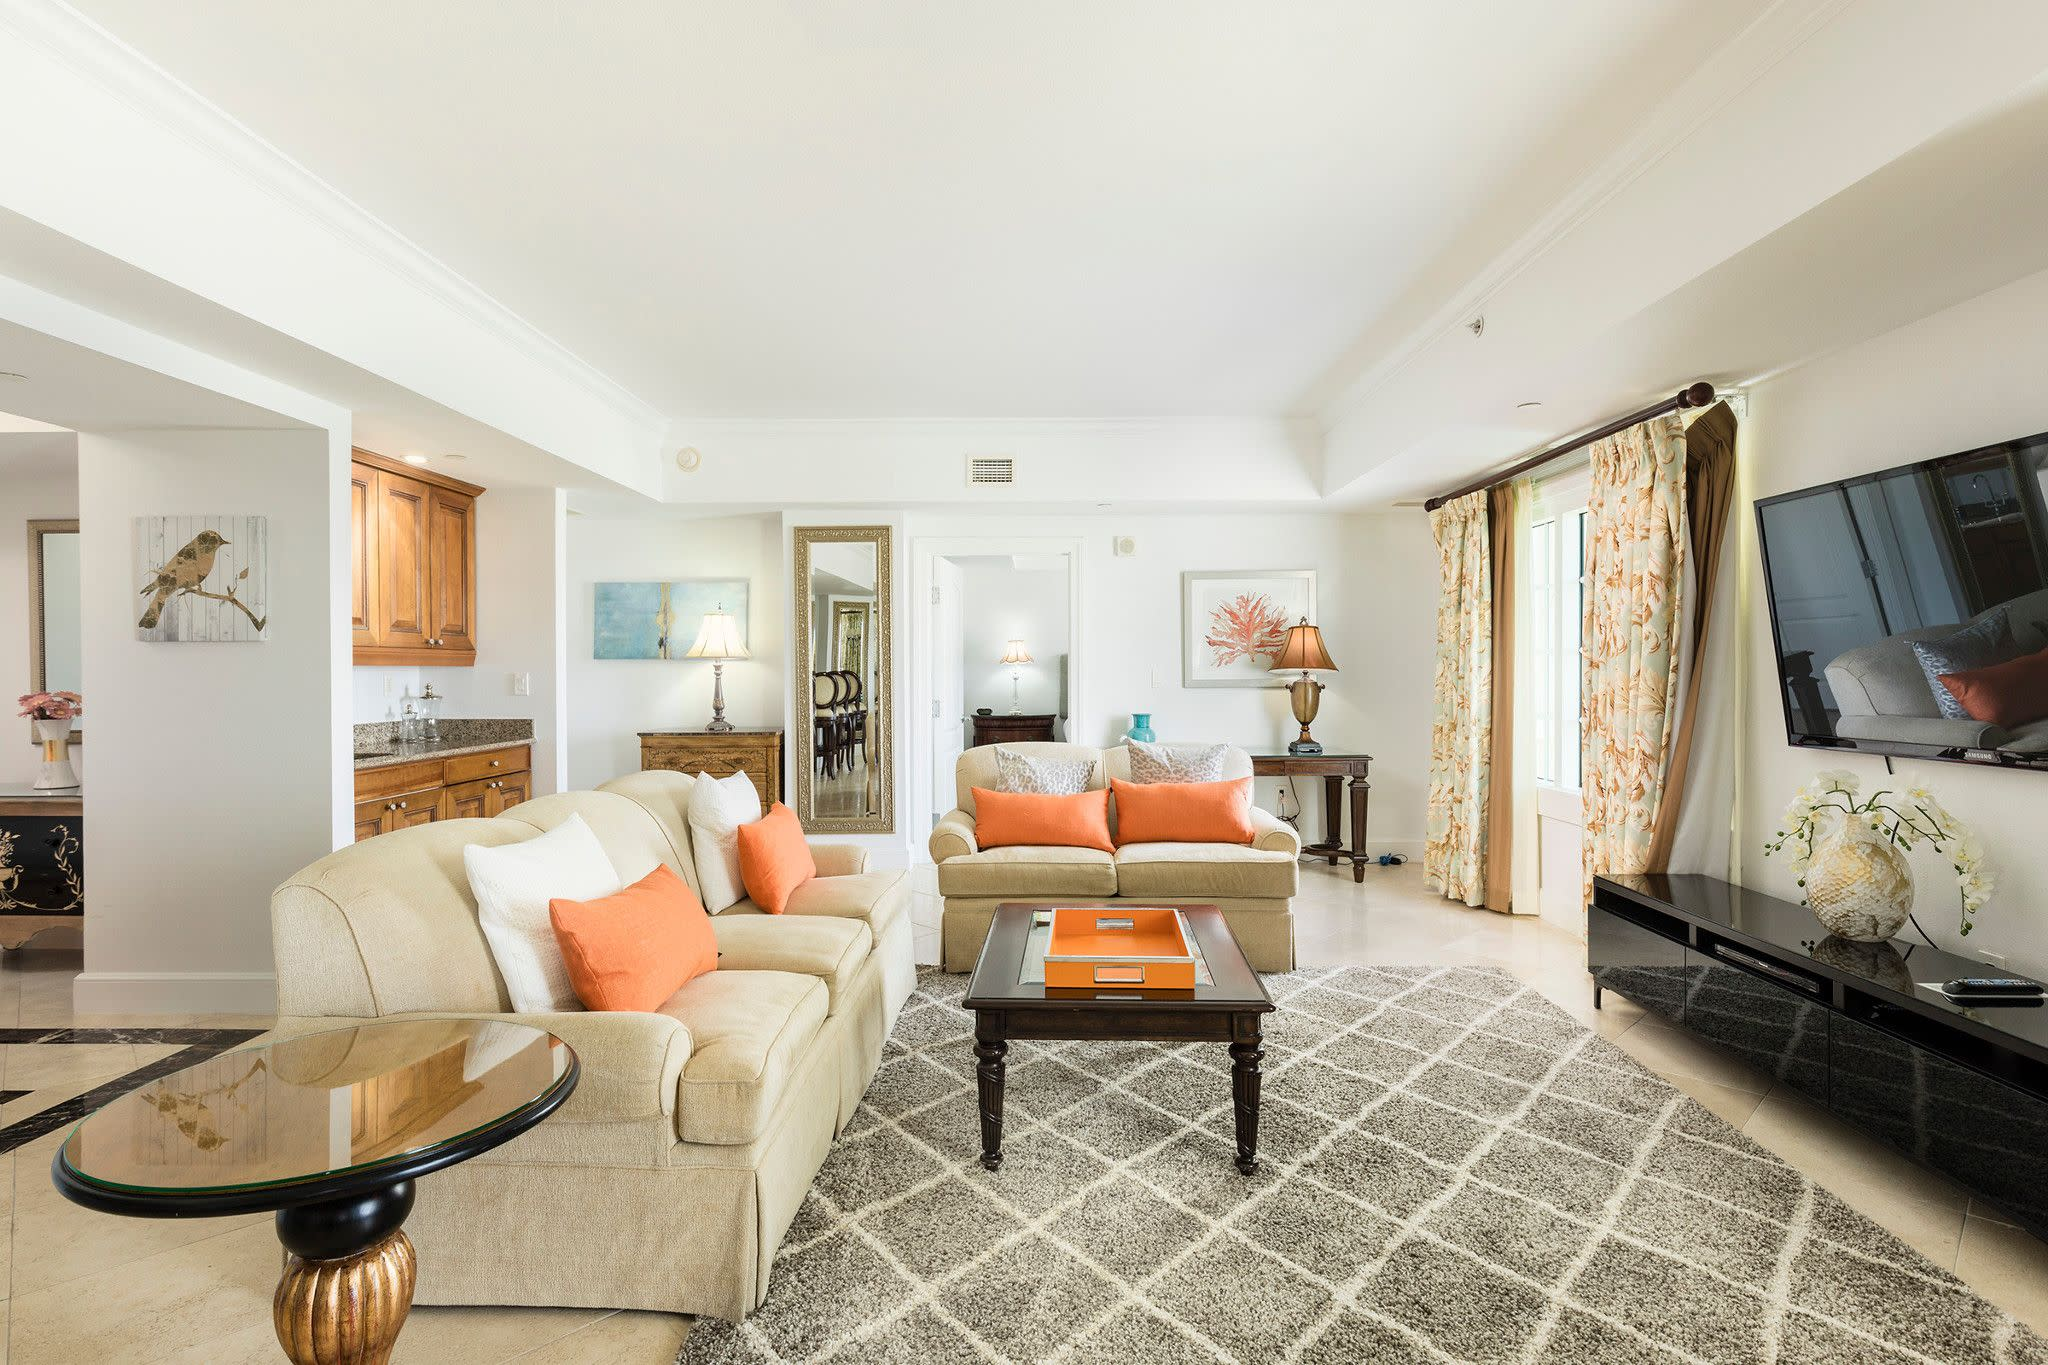 Enjoy All the Comforts of Home and Save With an Orlando Vacation Rental (Photo: Reunion Resort)